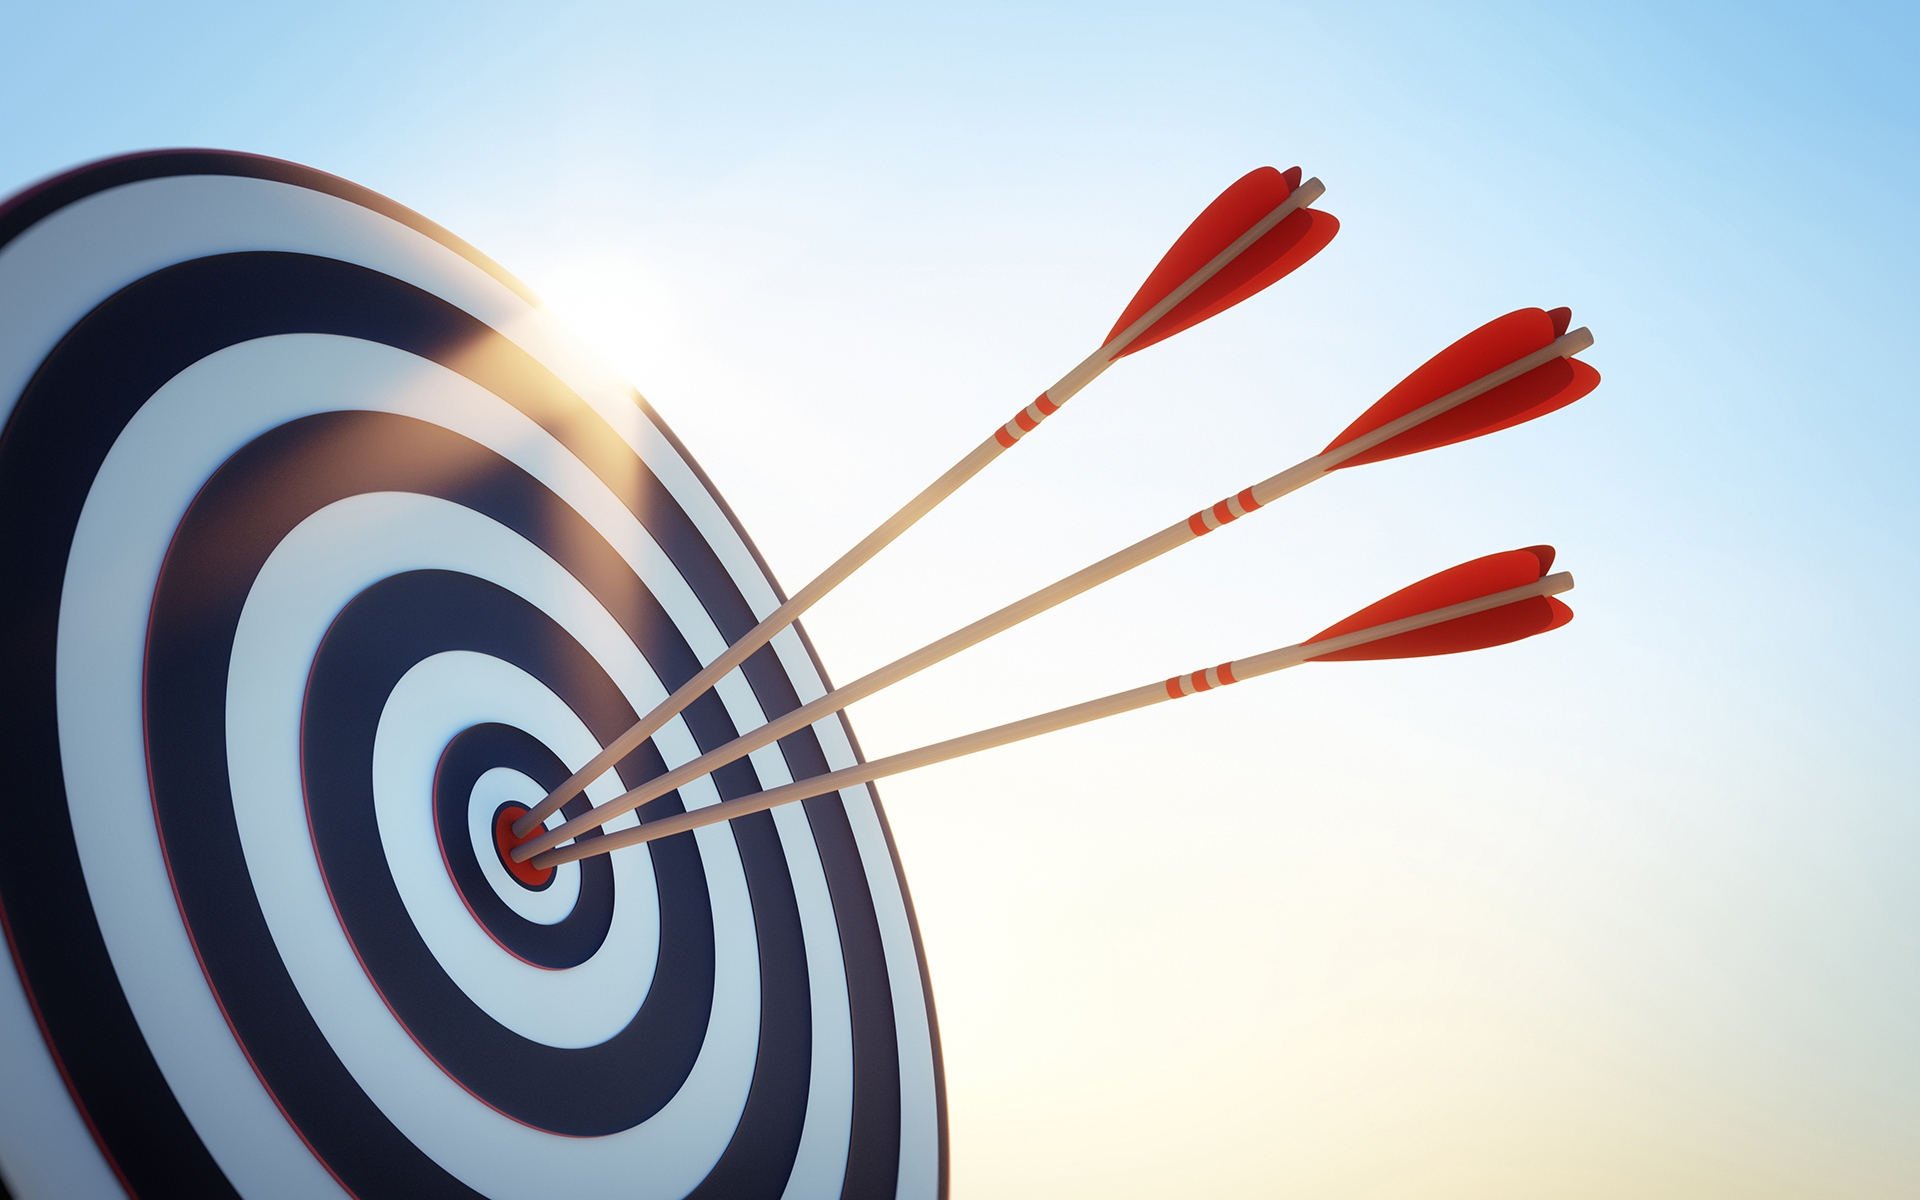 How to Tell if You Are Misaligned With Your Purpose - Three arrows shot at an outdoor target